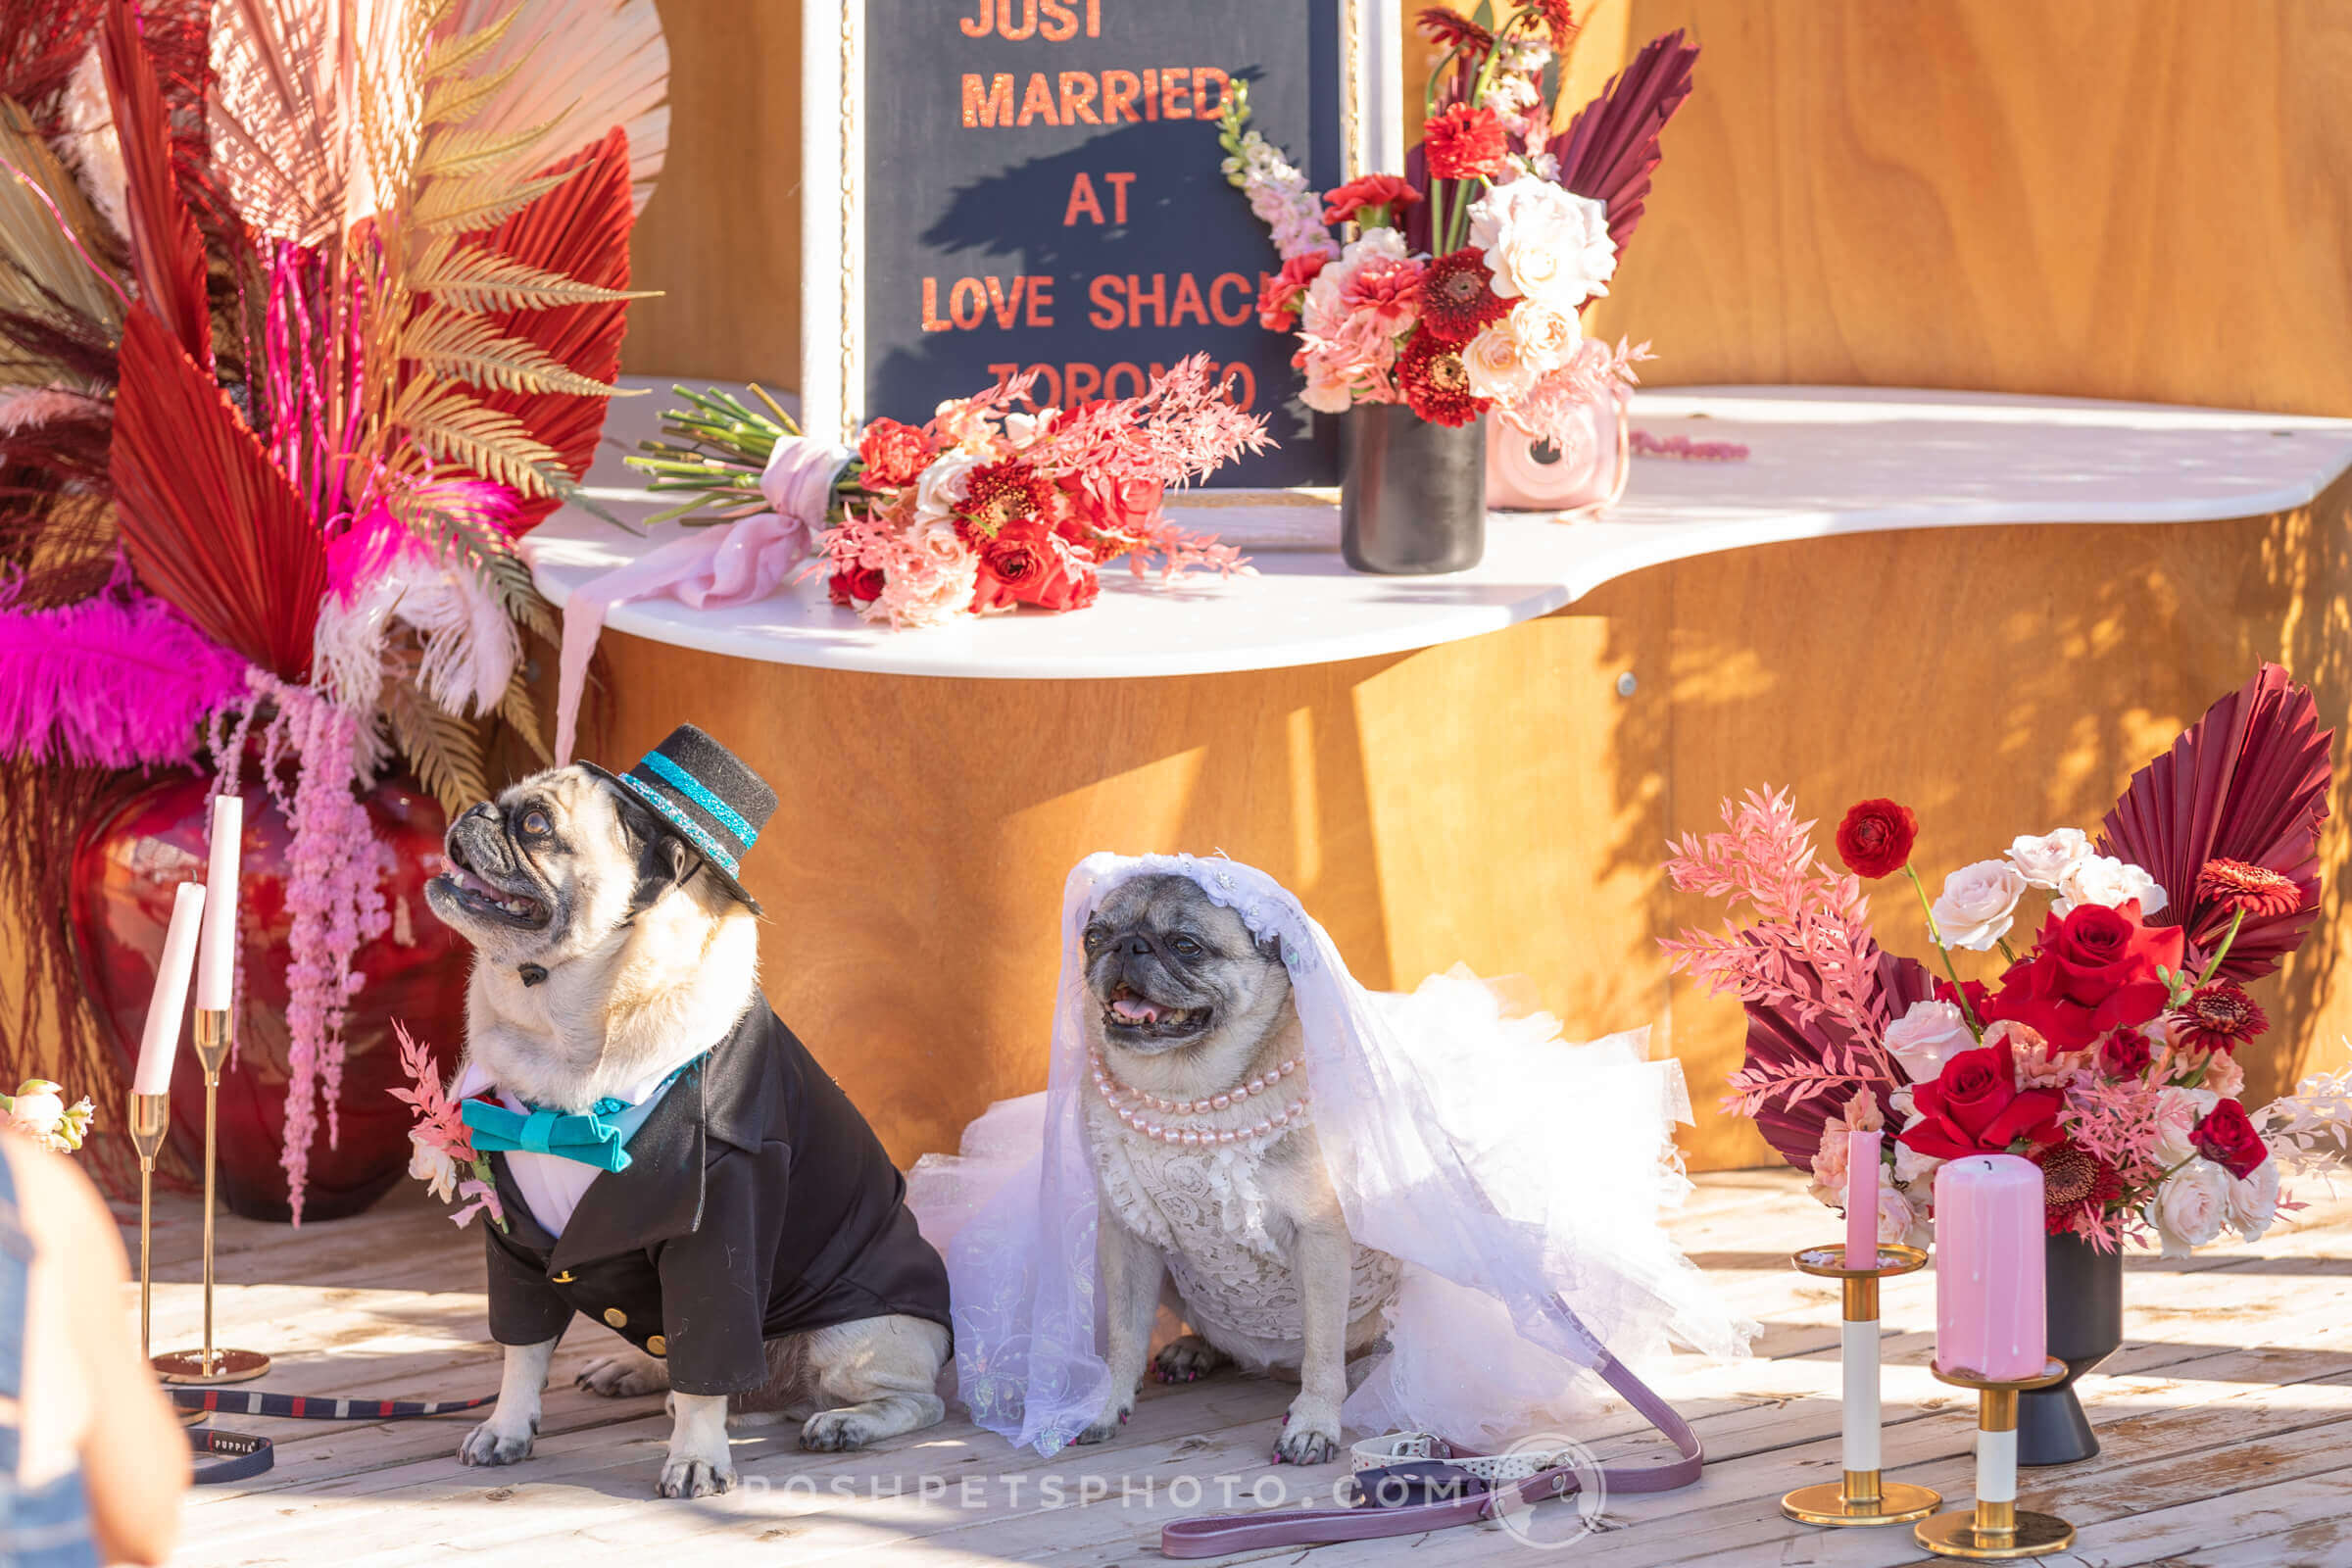 2 pugs getting married